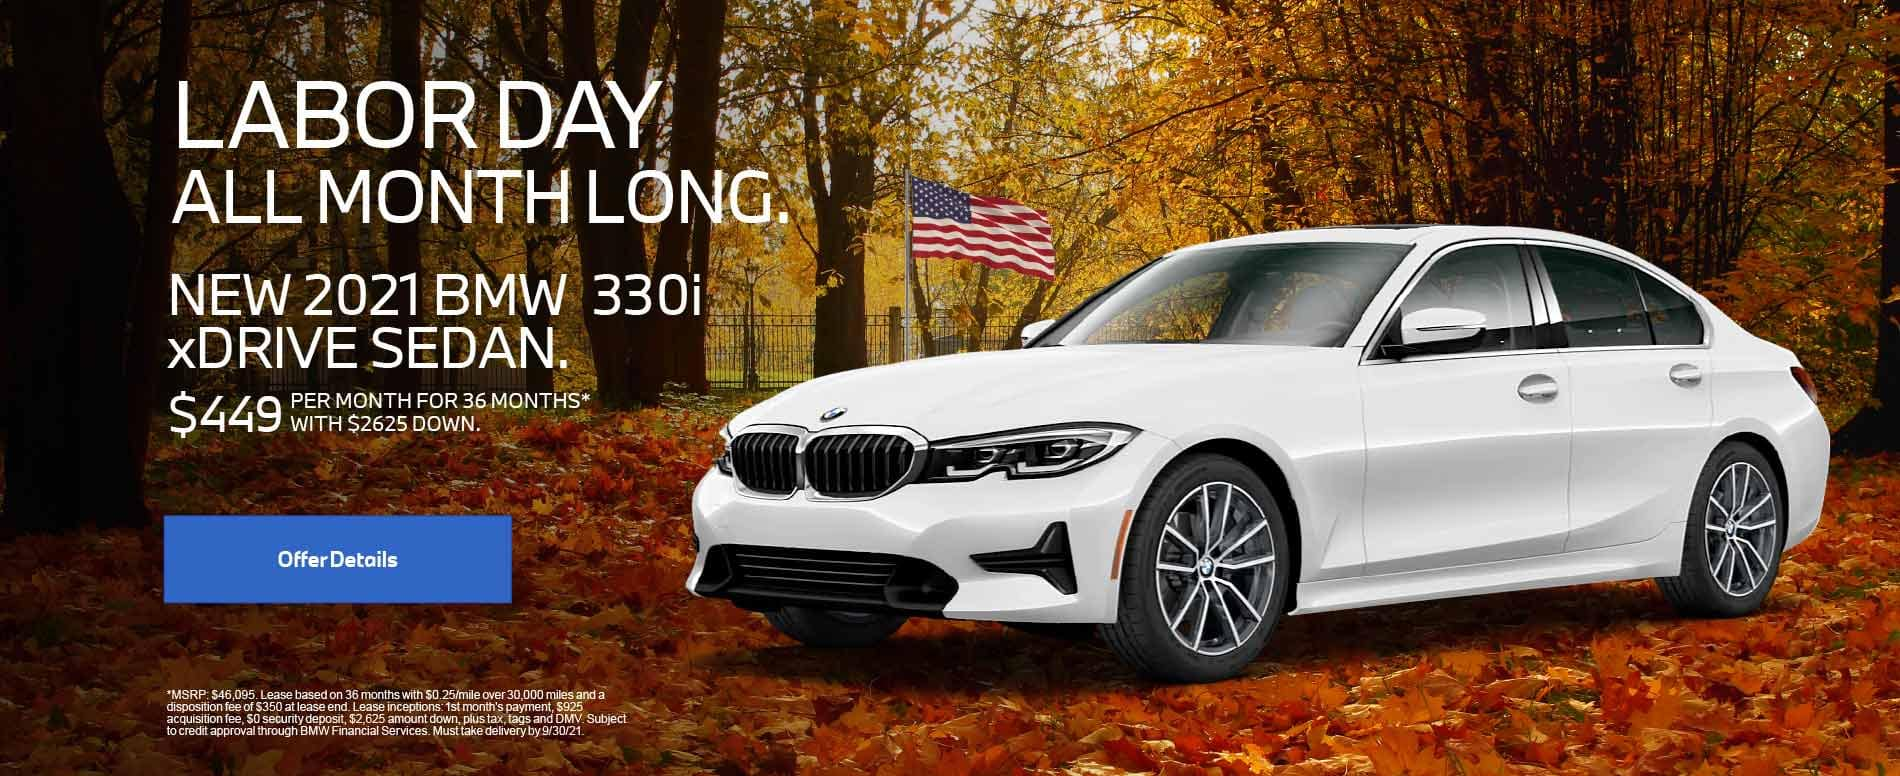 New 2021 BMW 330i xDRIVE SEDAN. $449 PER MONTH FOR 36 months with $2,625 Down.